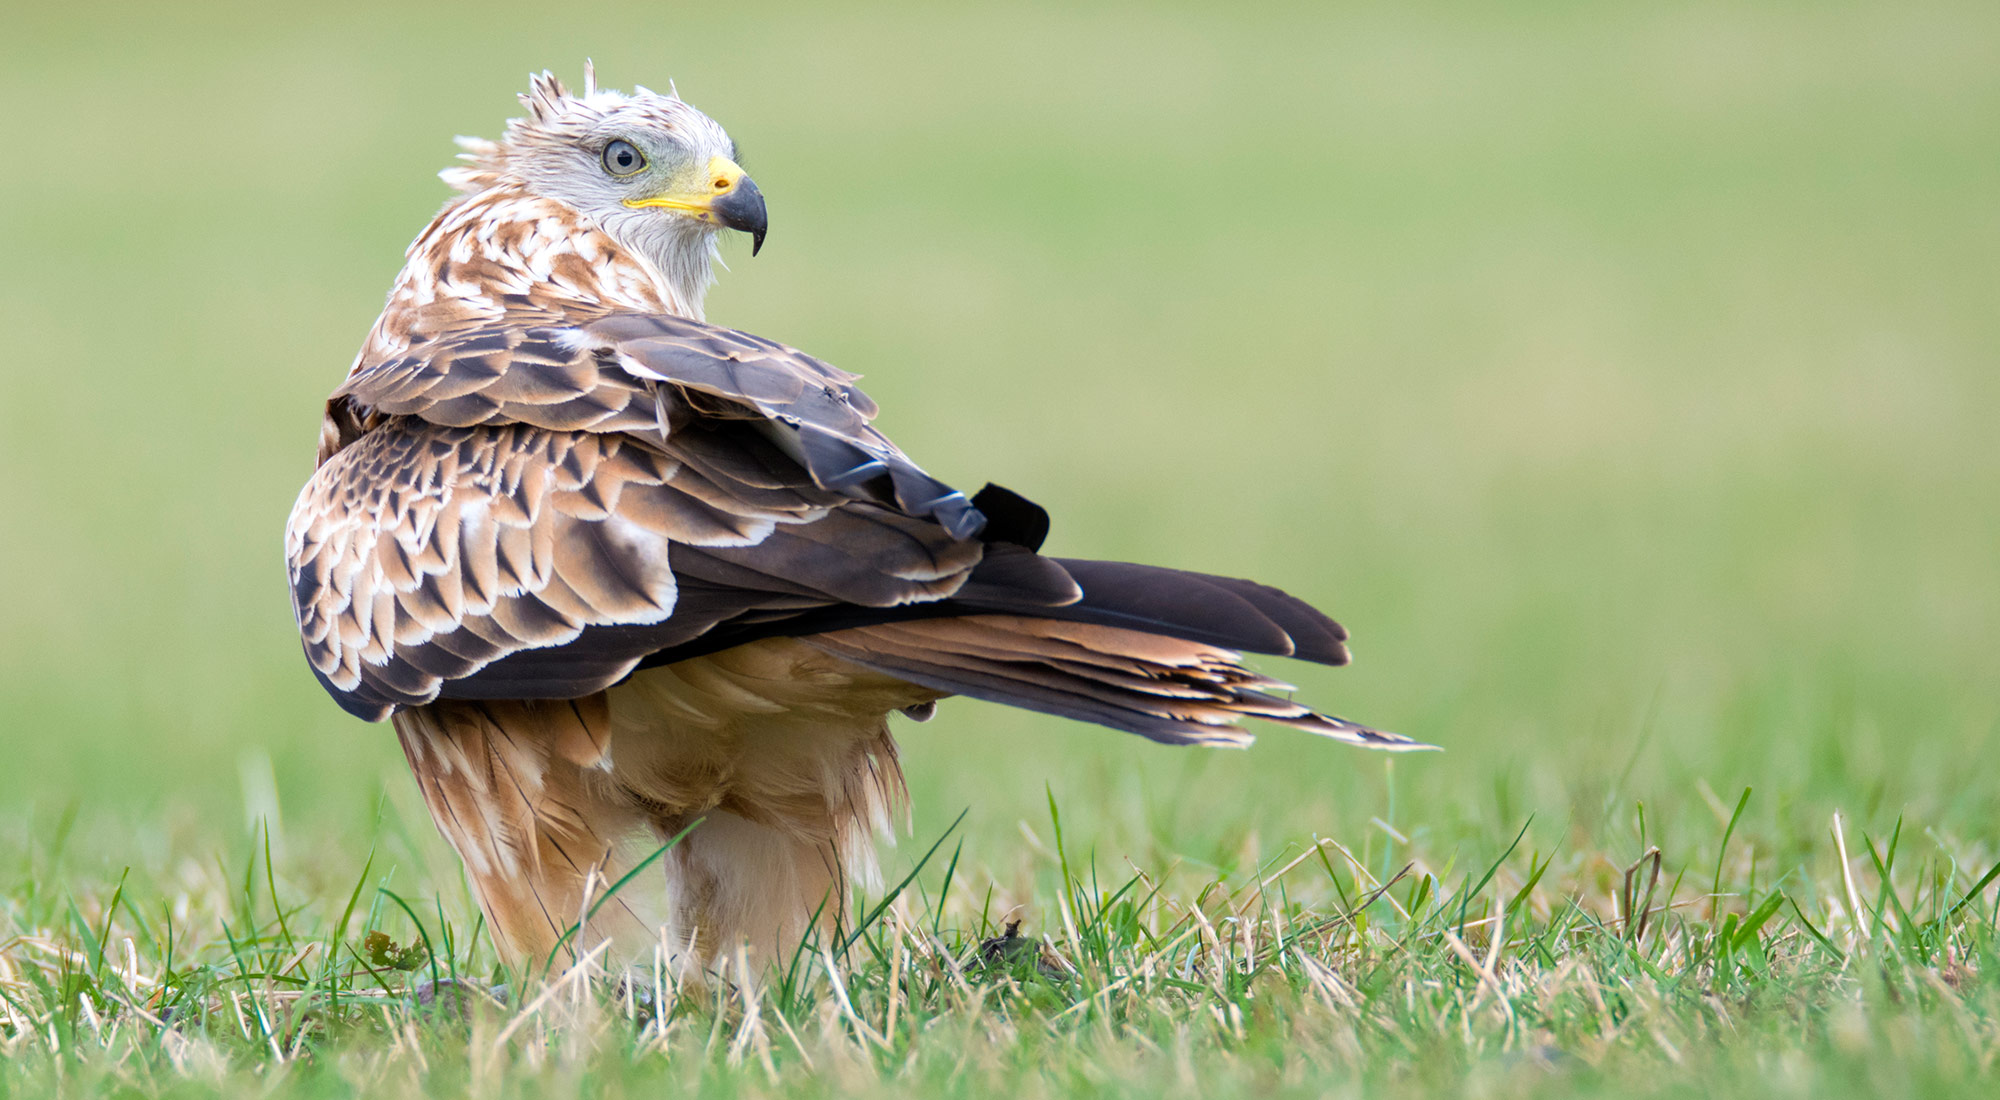 Wildlife Photography Hides Hide photography Bourne Lincolnshire red kite bird of prey scavenger field green grass Jim Poberezniuk nikon raptor